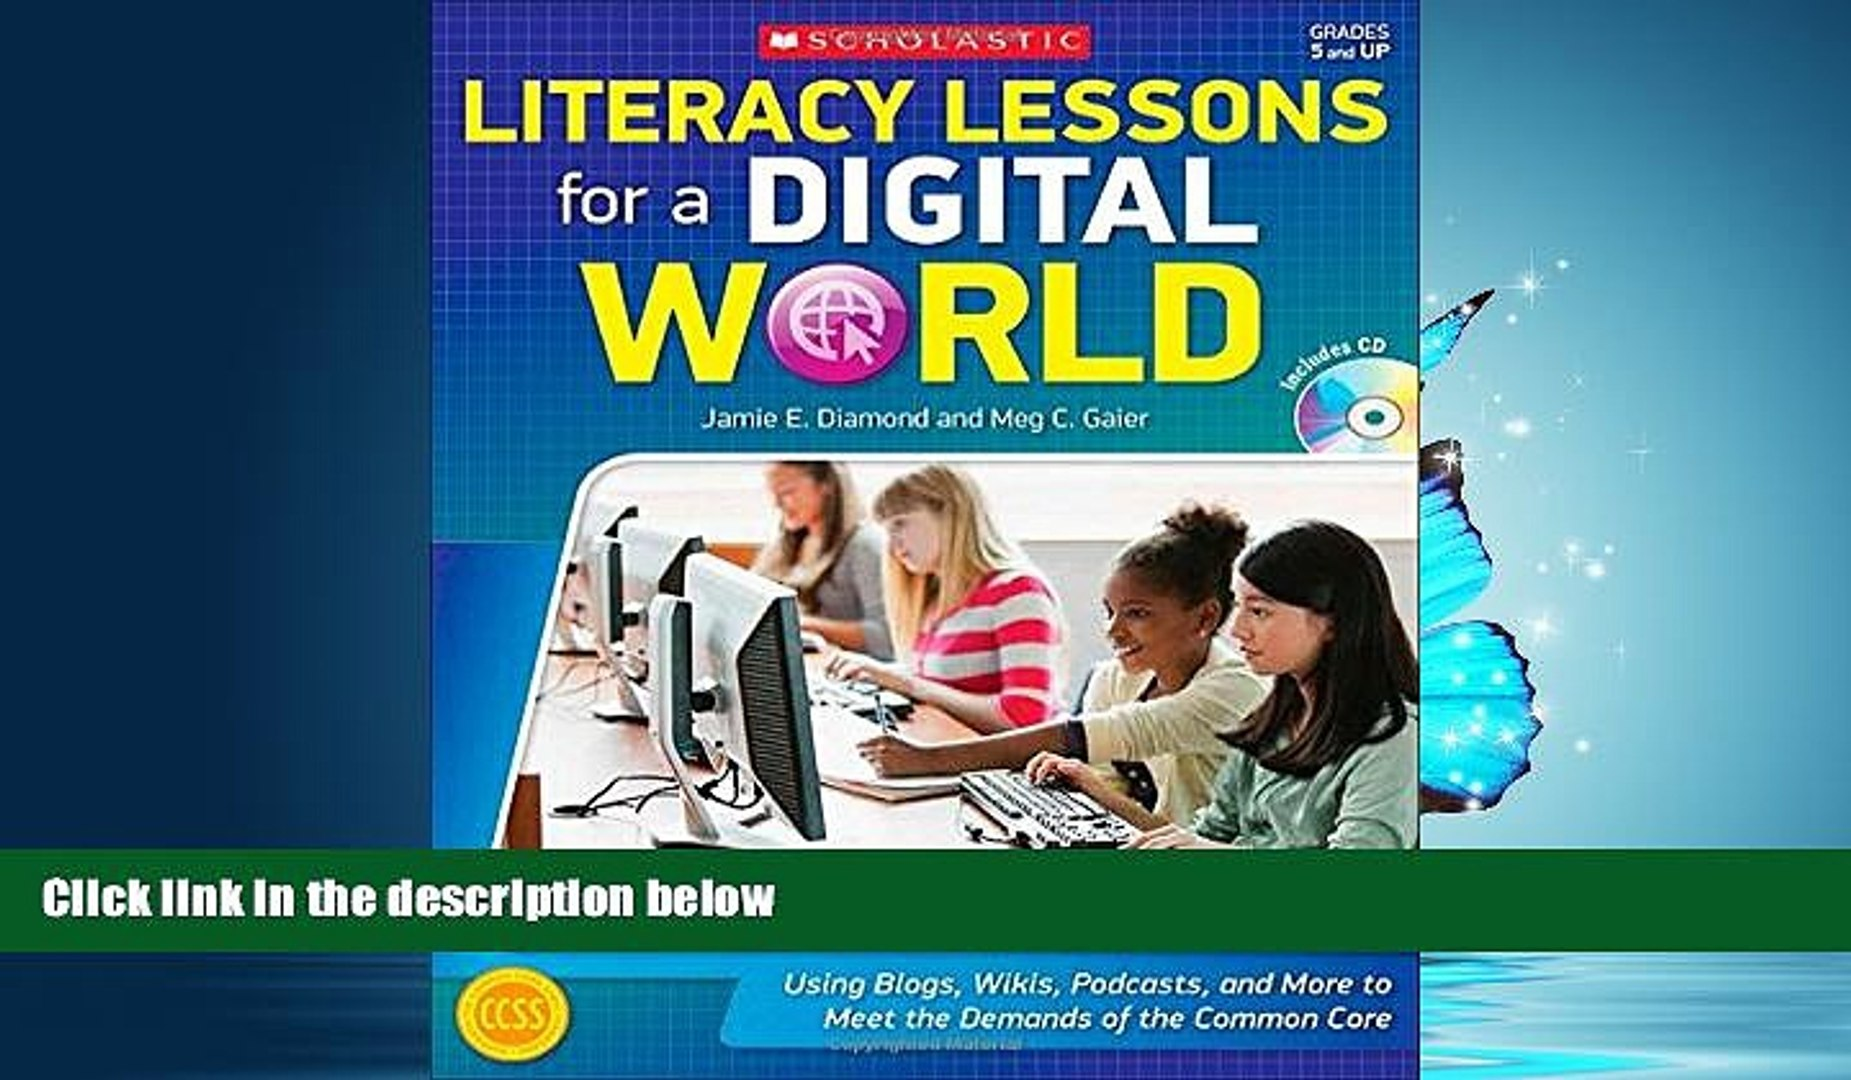 Choose Book Literacy Lessons for a Digital World: Using Blogs, Wikis, Podcasts, and More to Meet